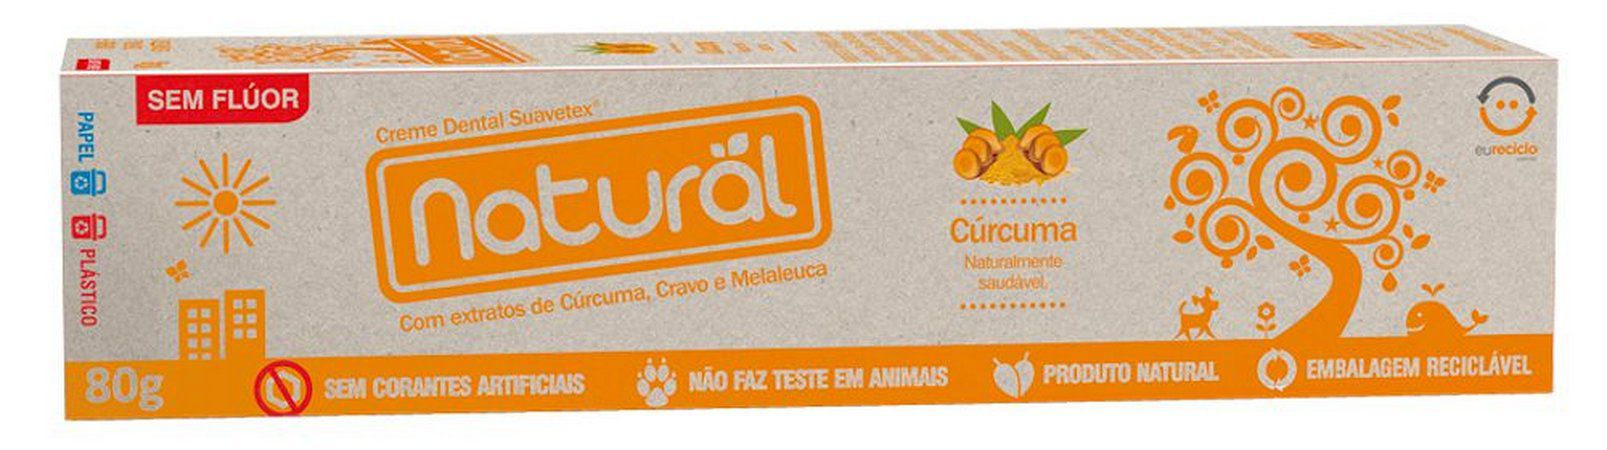 Creme Dental Natural de Cúrcuma, Cravo e Melaleuca| Or. Natural - 80g